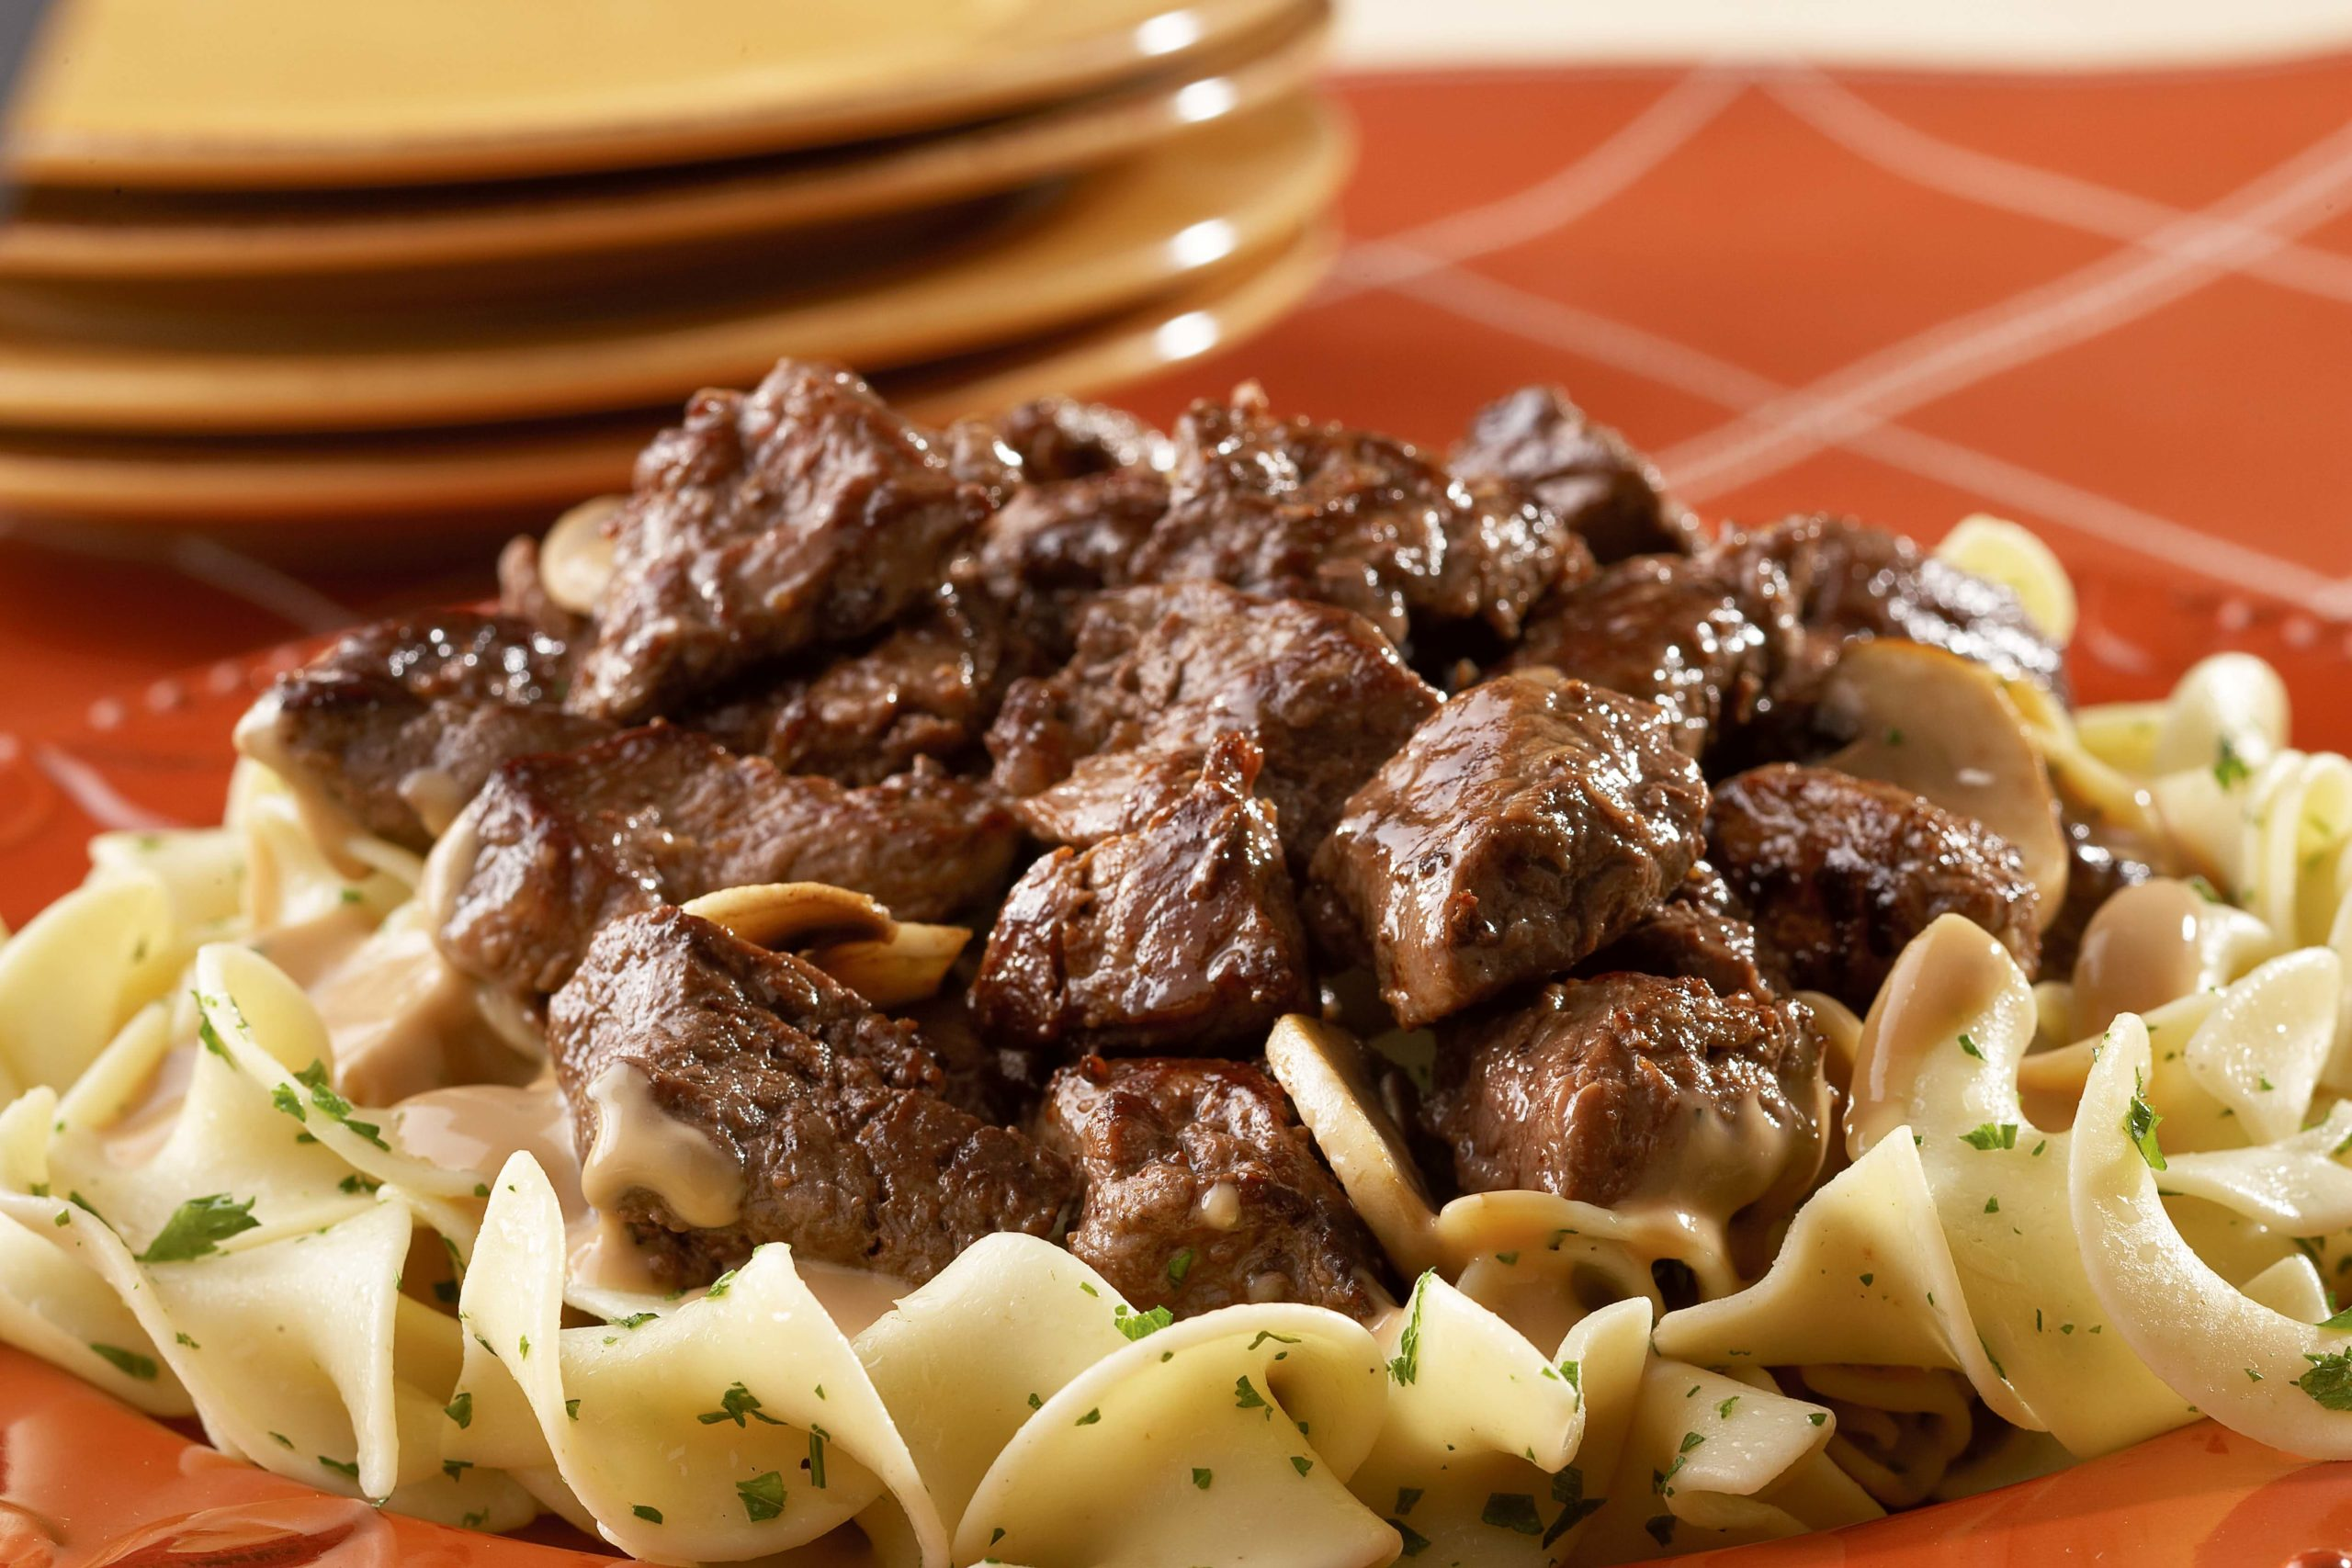 Bison Ribeye with Mushrooms and Noodles